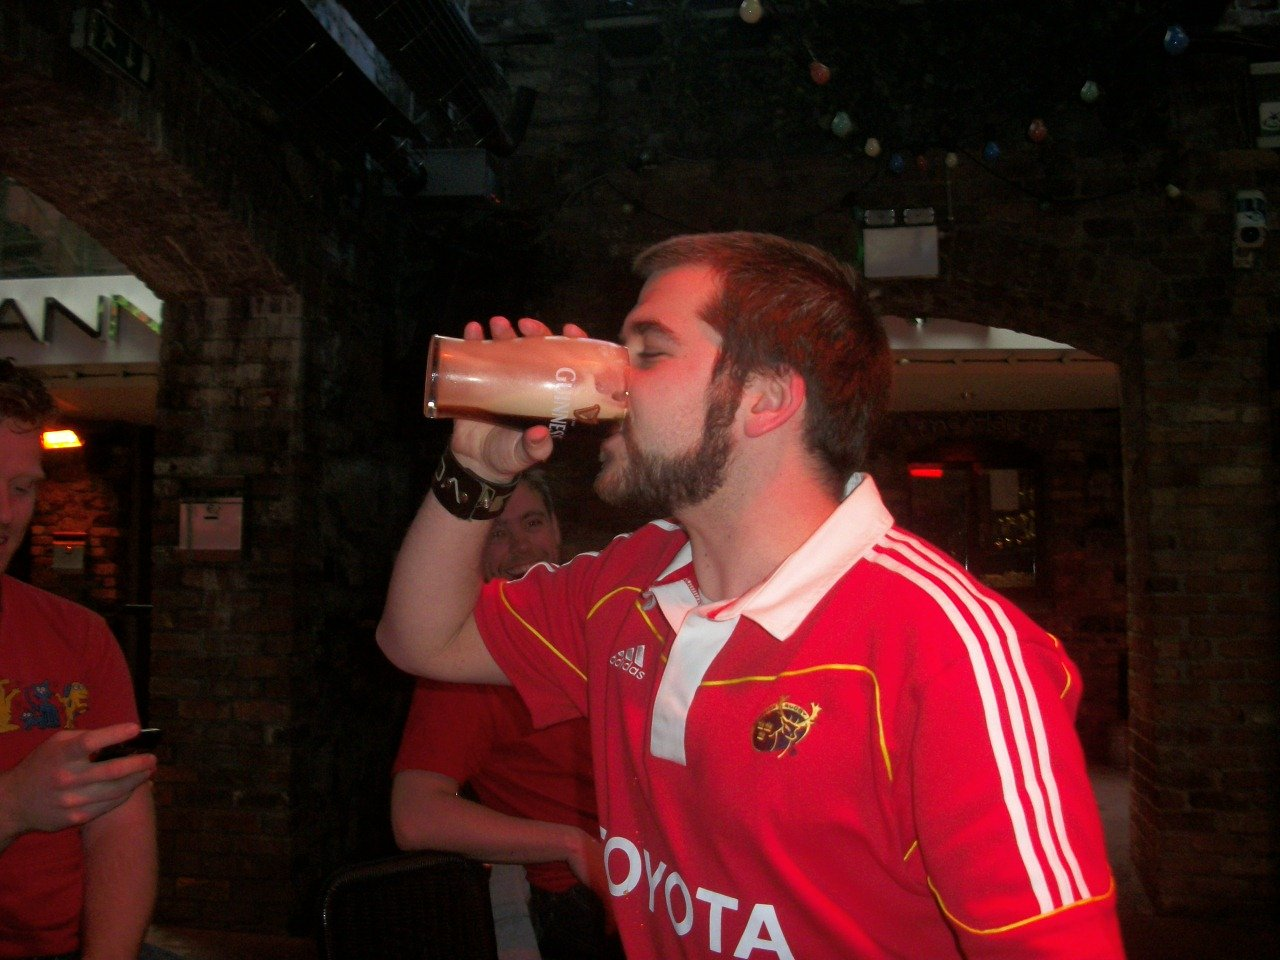 The BNOC can also be spotted by their chronic wearing of rugby shirts